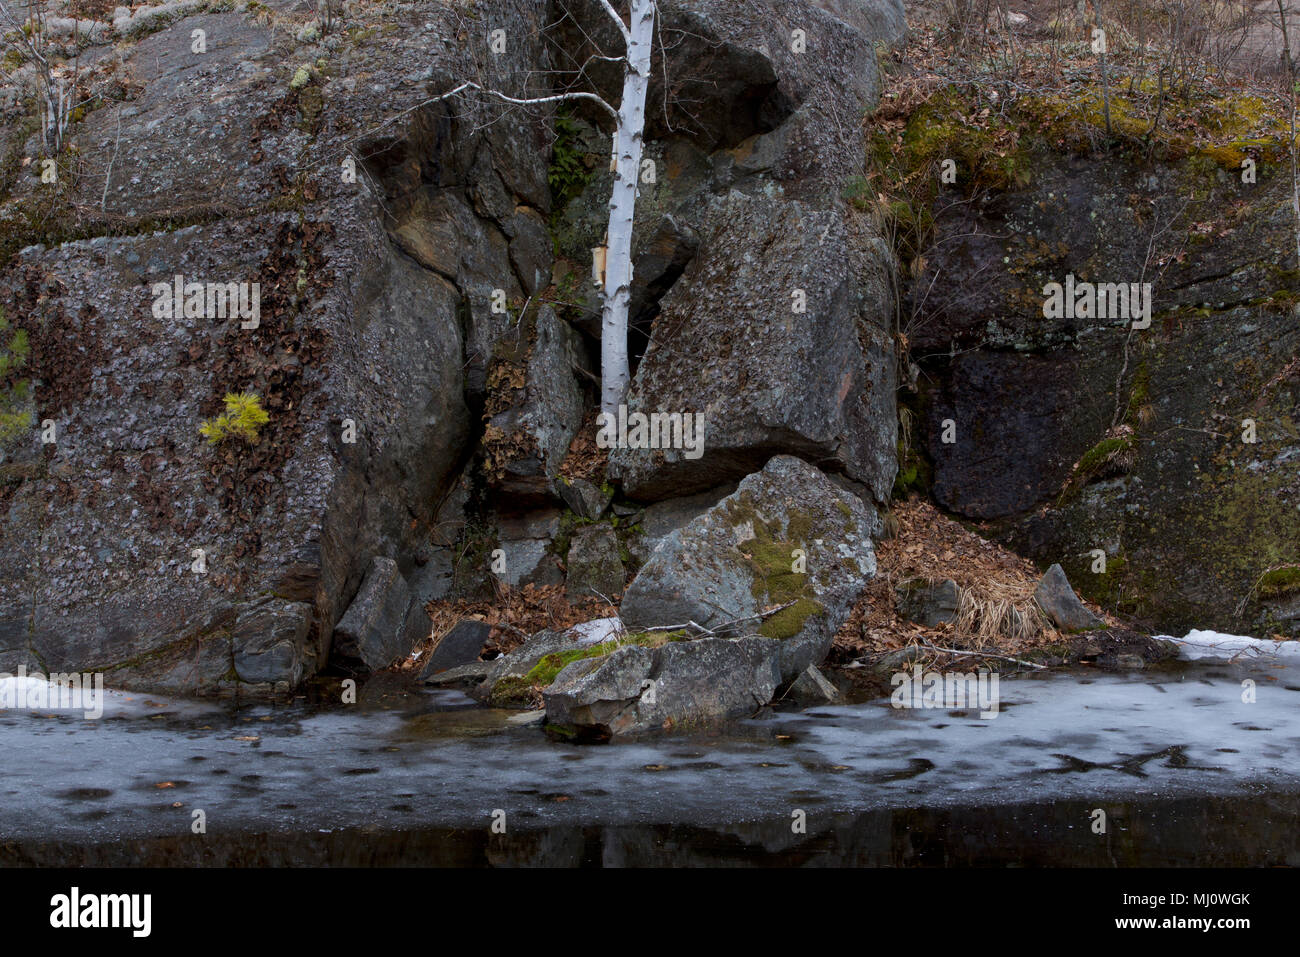 A lone birch tree survives in a rock-tumbled environment over a winter pond, despite the lack of soil, in Queen Elizabeth II Wildlands Provincial Park - Stock Image